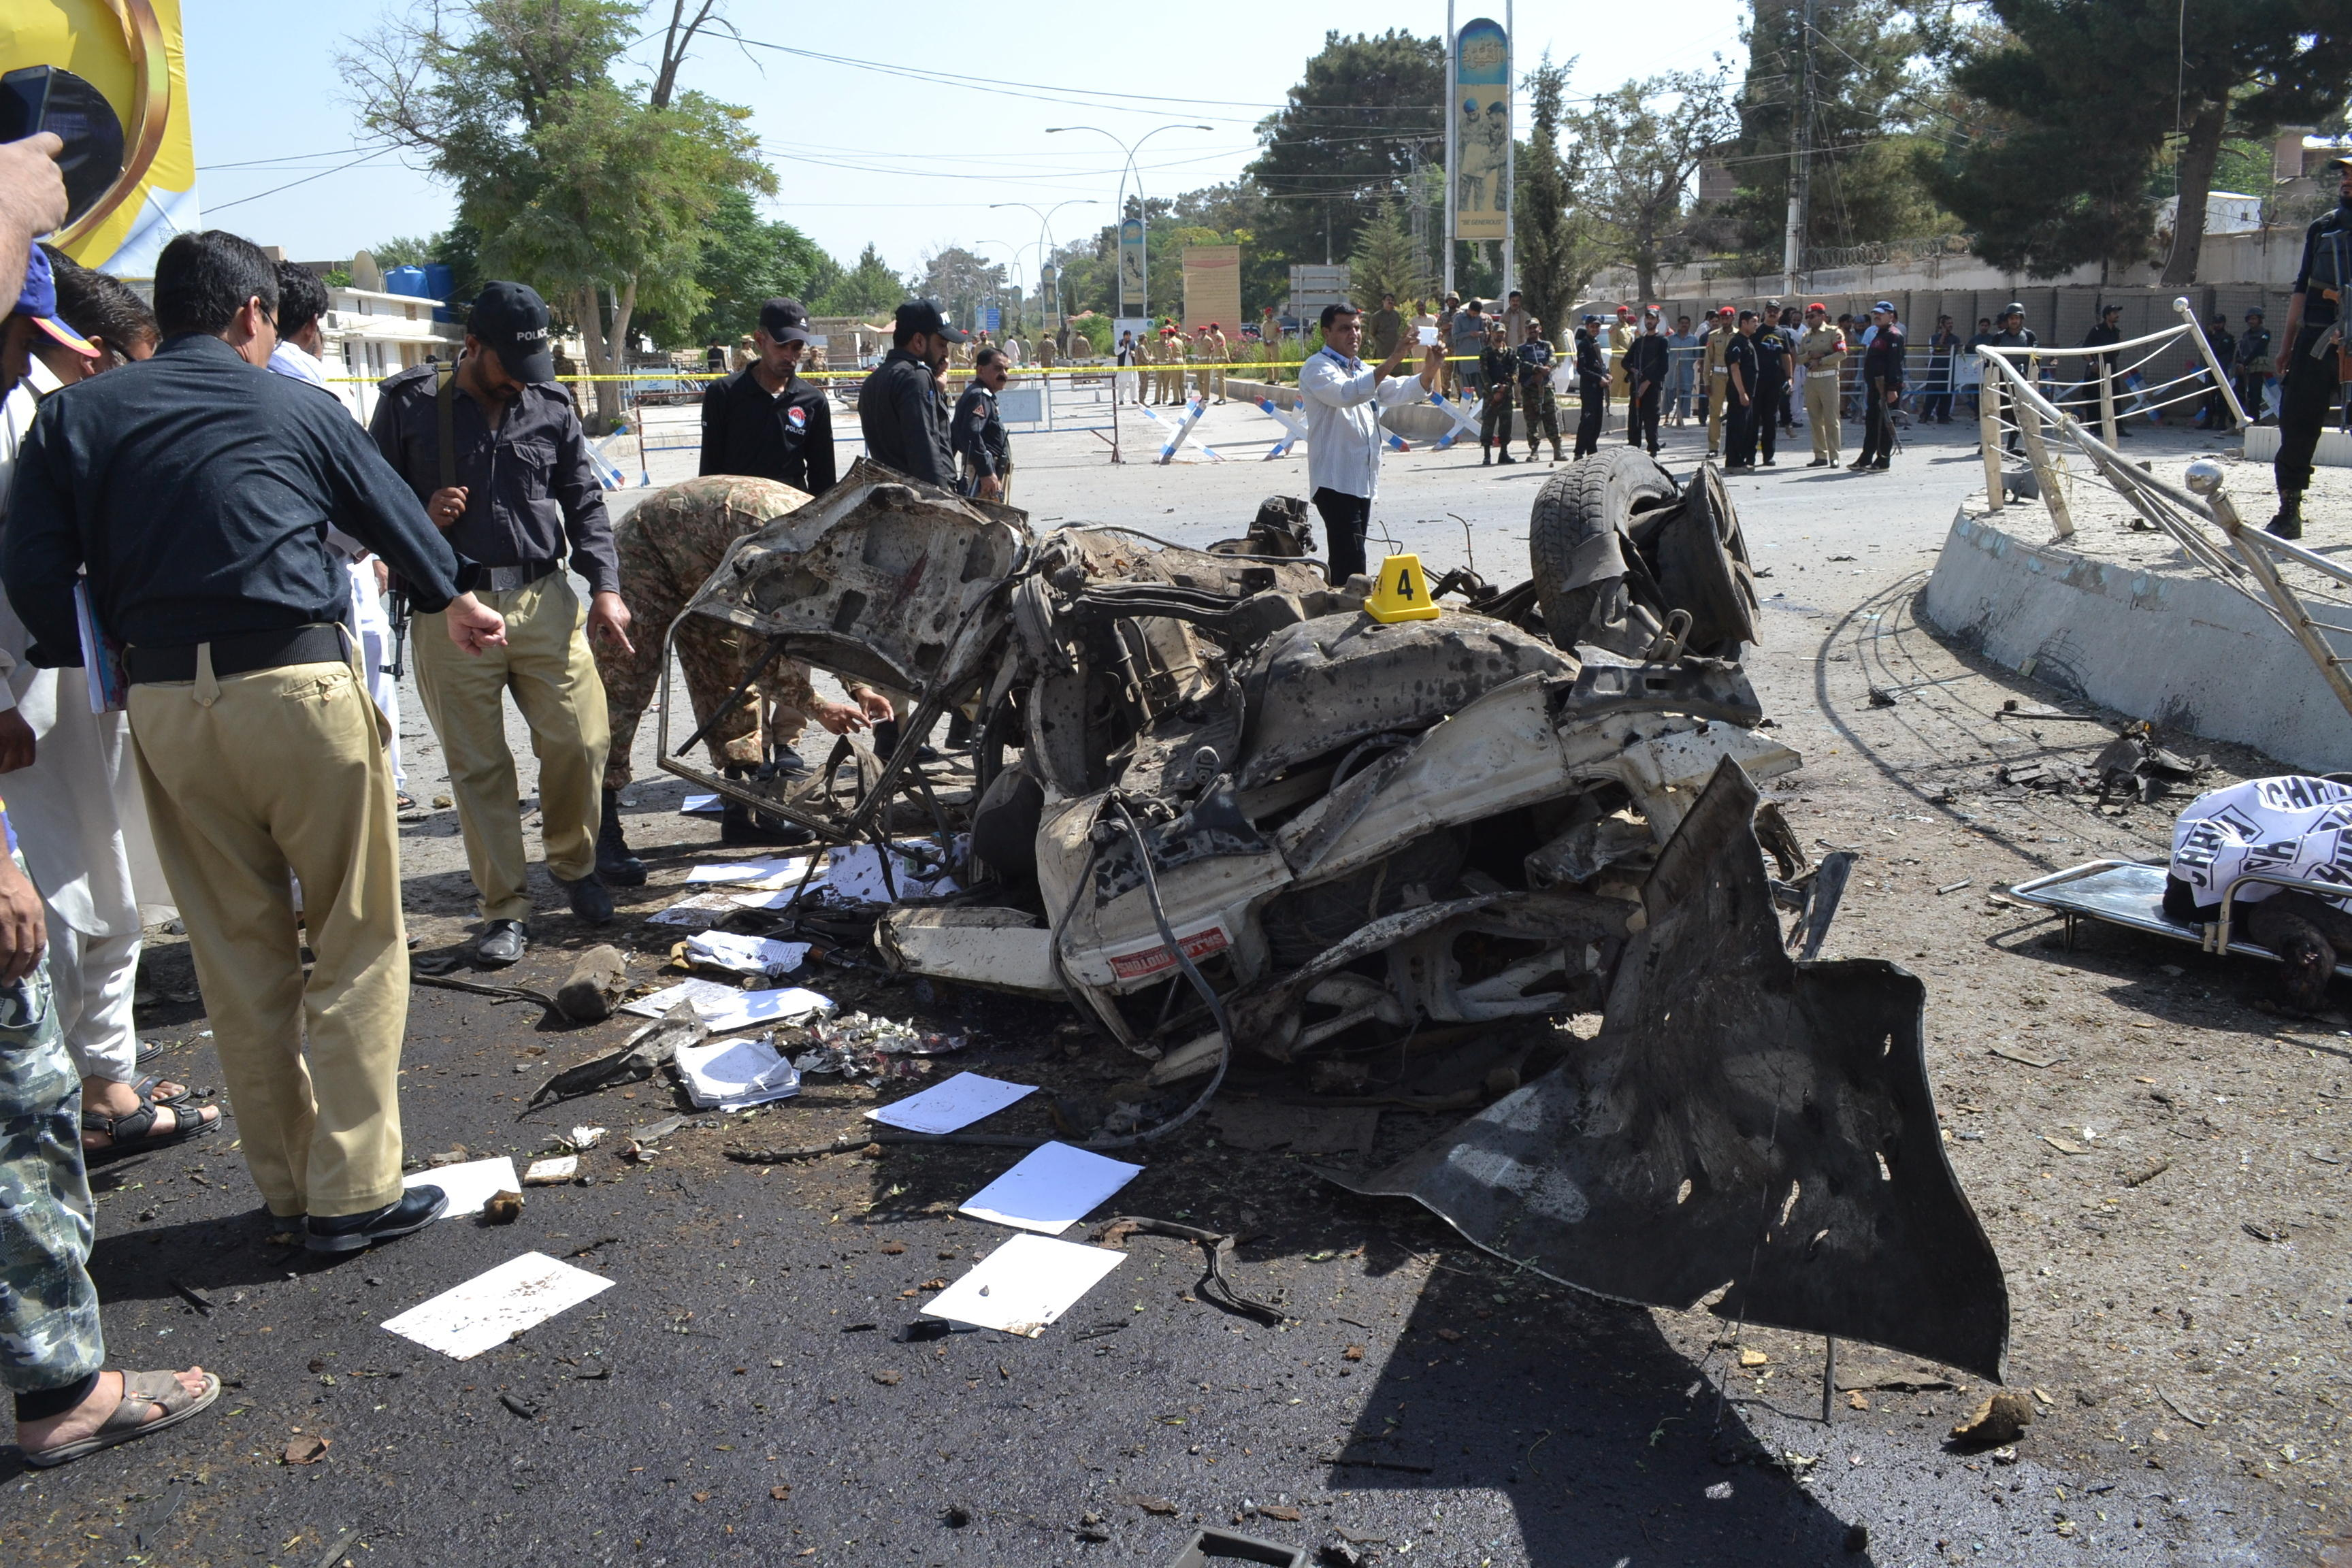 40 people killed in bomb and gun attacks across 3 cities